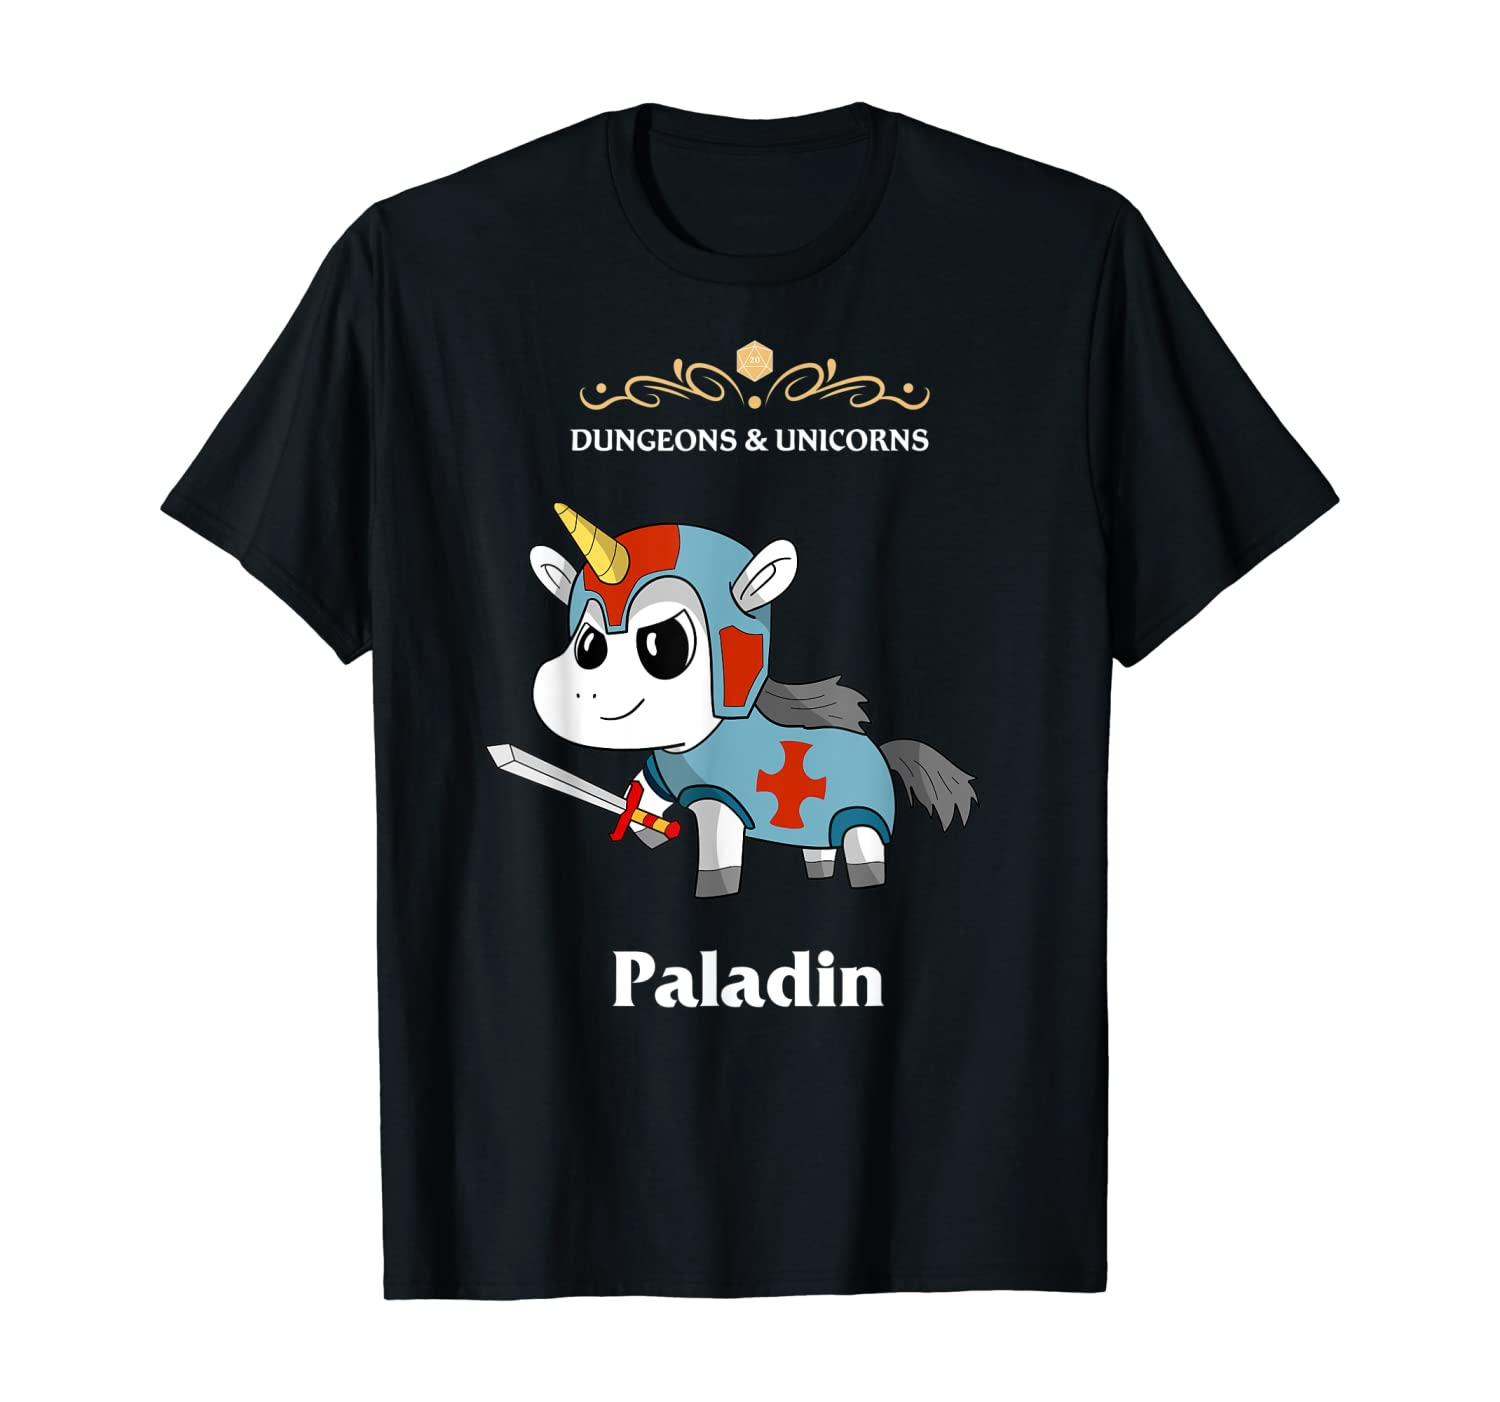 Dungeons and Unicorns RPG D20 Anime Dragons Paladin Gamers T-Shirt